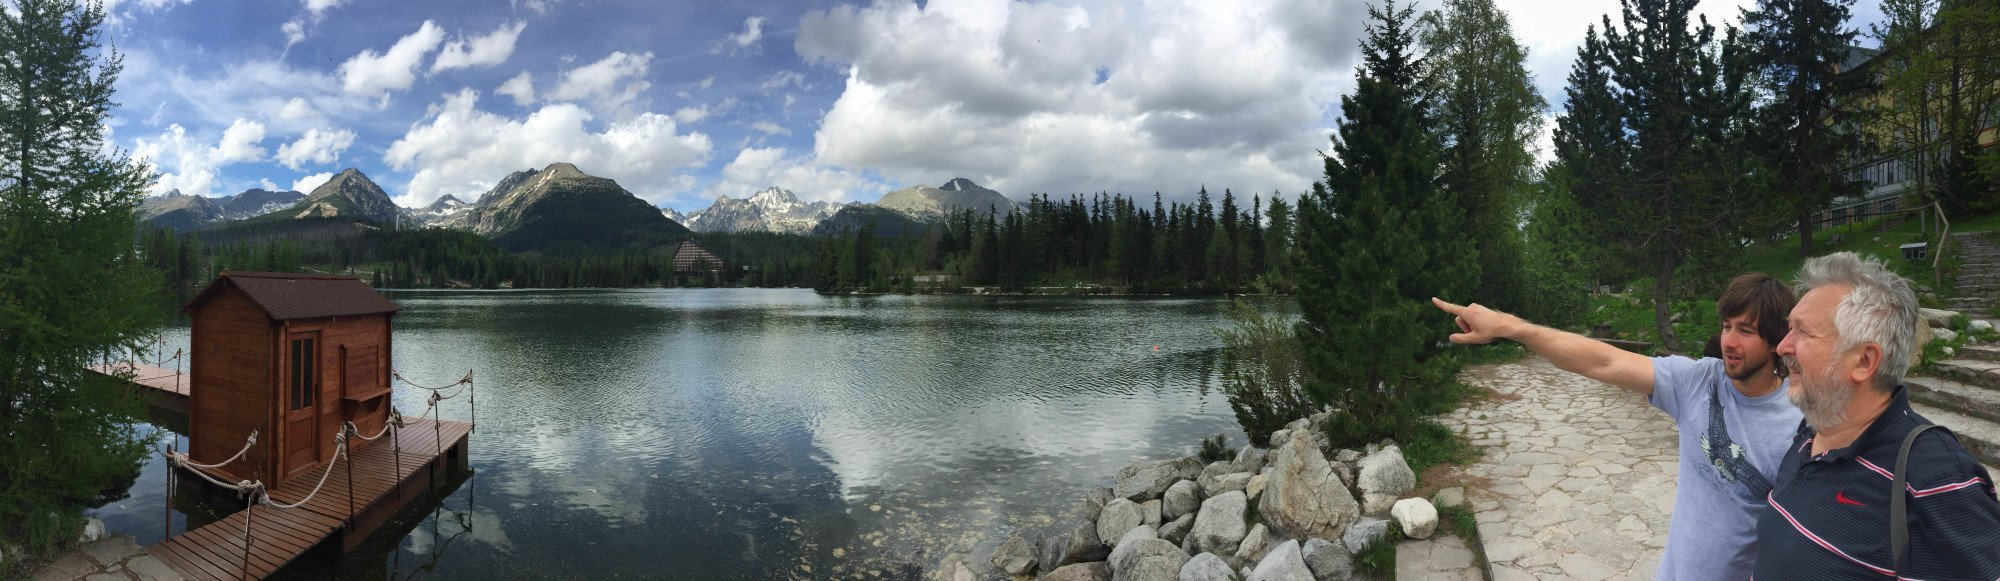 Finally, a bit of sightseeing in the magnificent High Tatras.